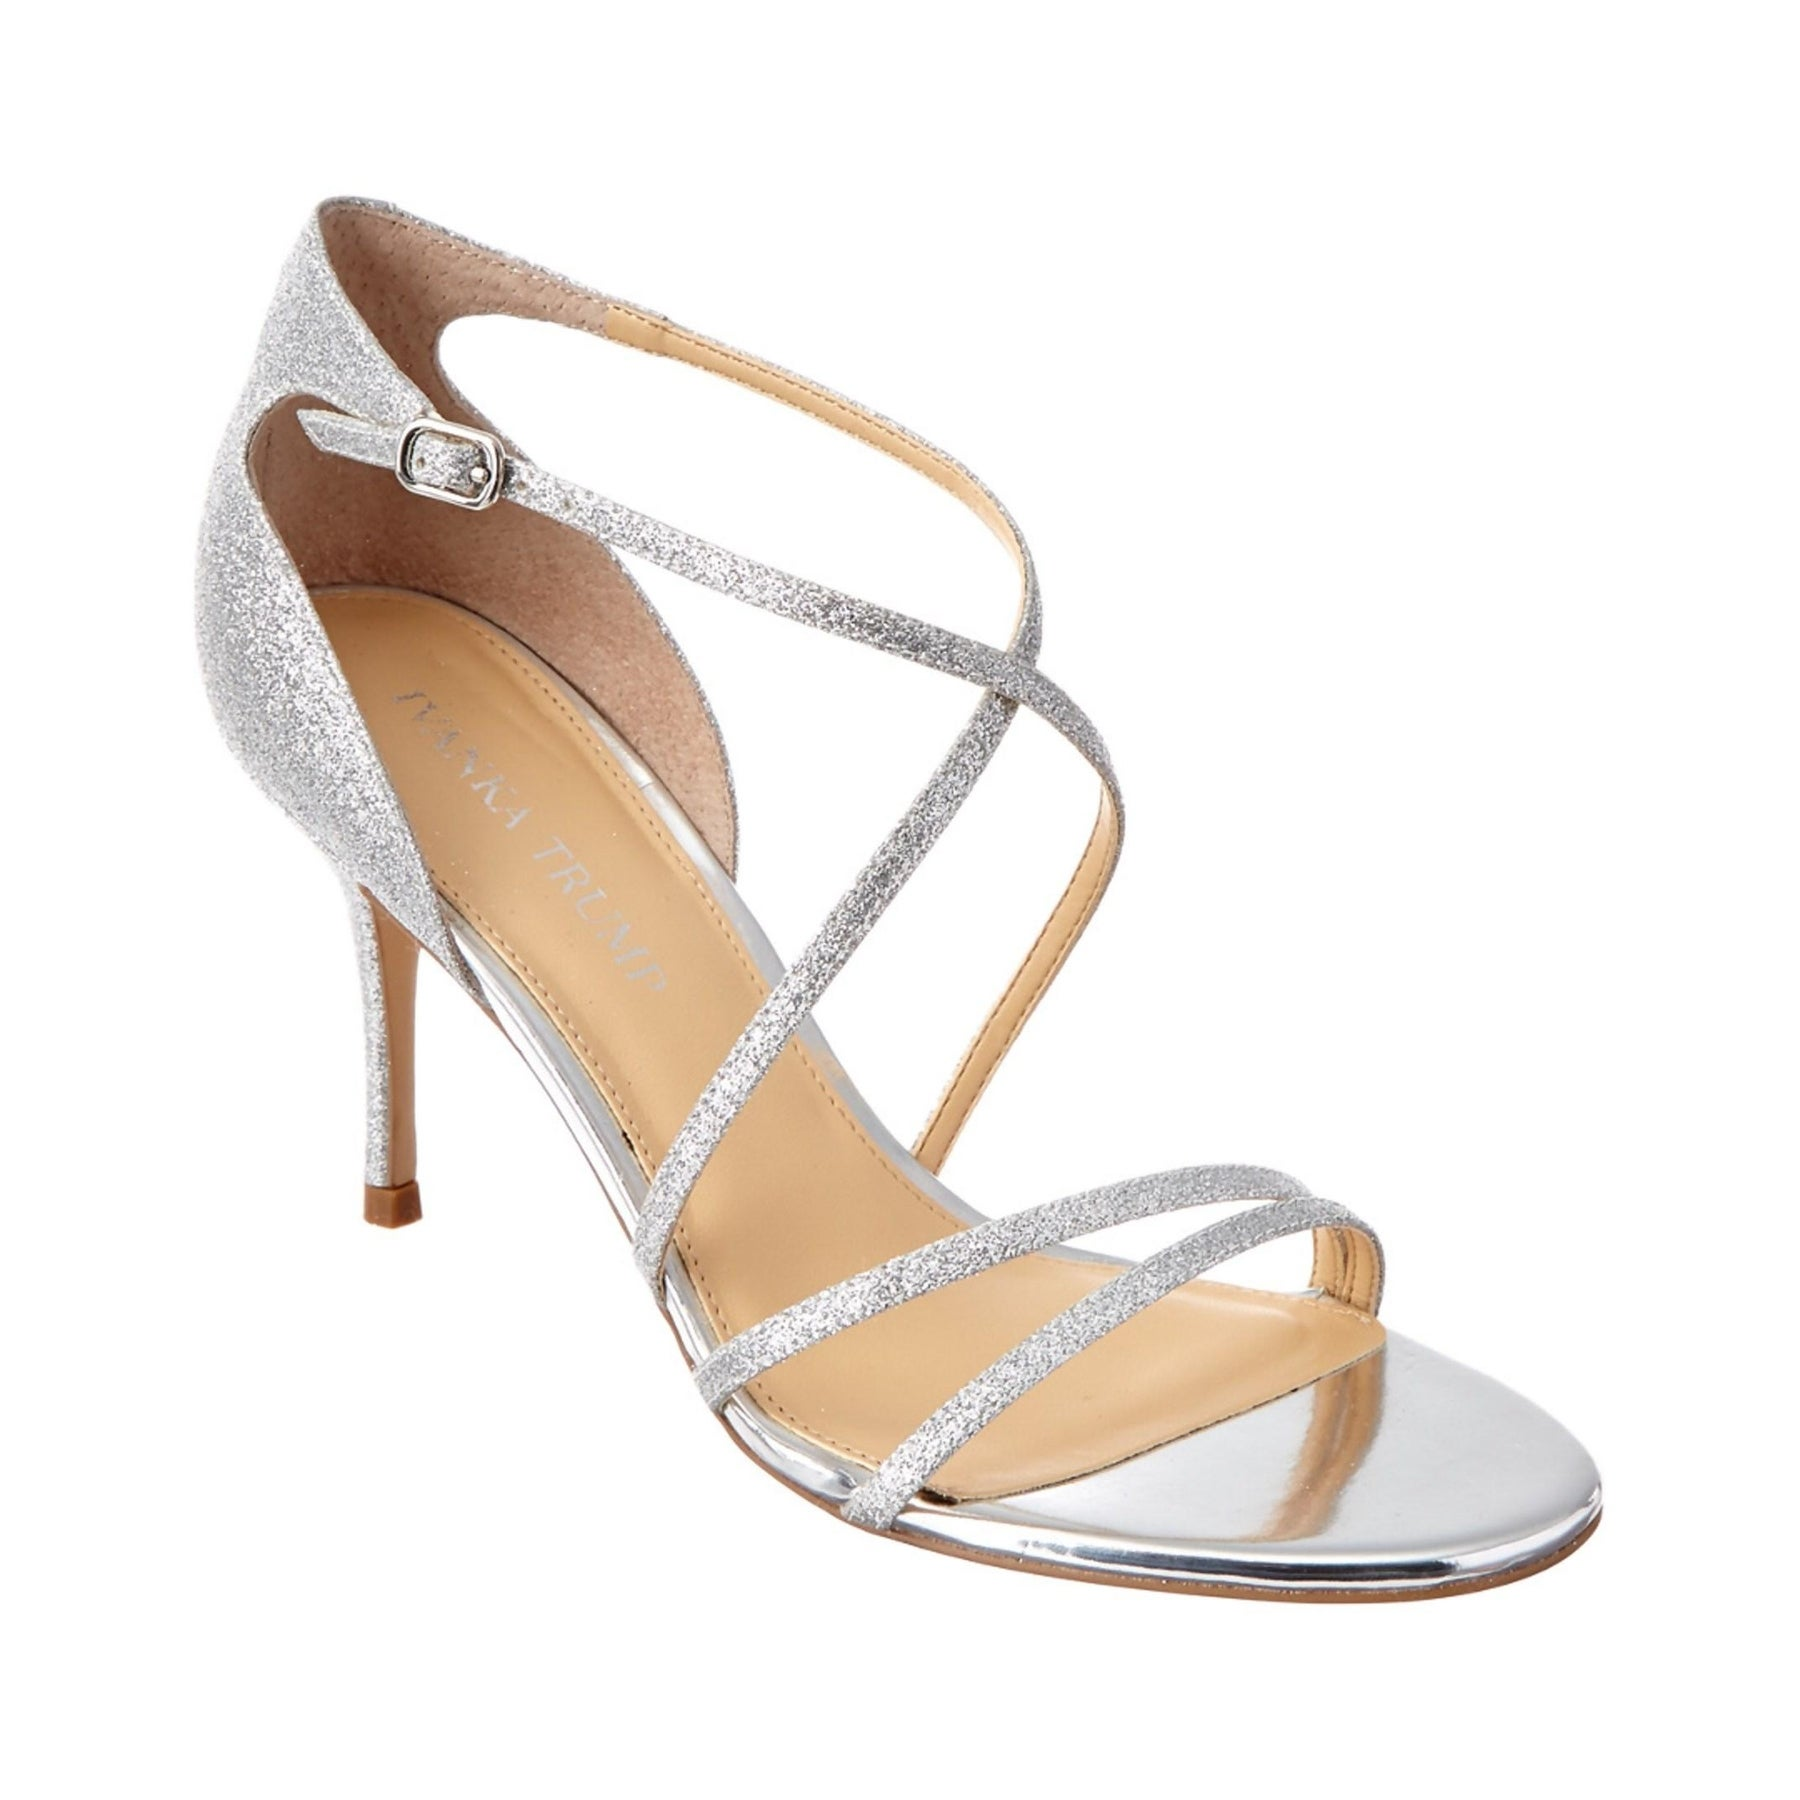 Ivanka Trump Womens Garis Leather Open Toe Ankle Strap D orsay Pumps